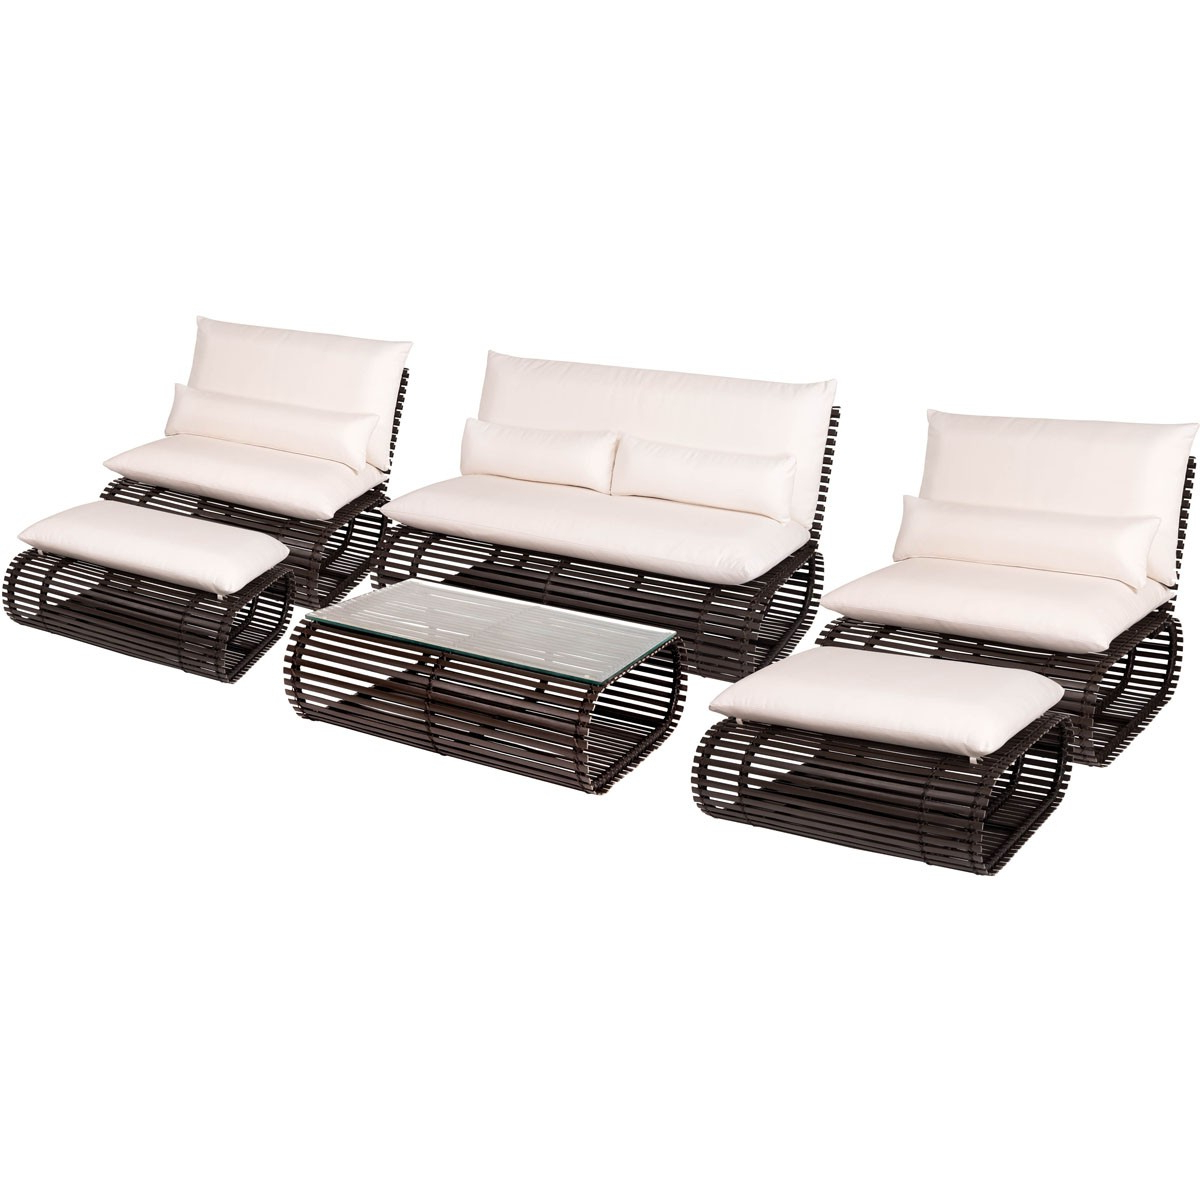 Novel 6 Piece Outdoor Seating Set Intended For 2019 Outdoor Patio Lounge Chairs With Ottoman (Gallery 12 of 25)